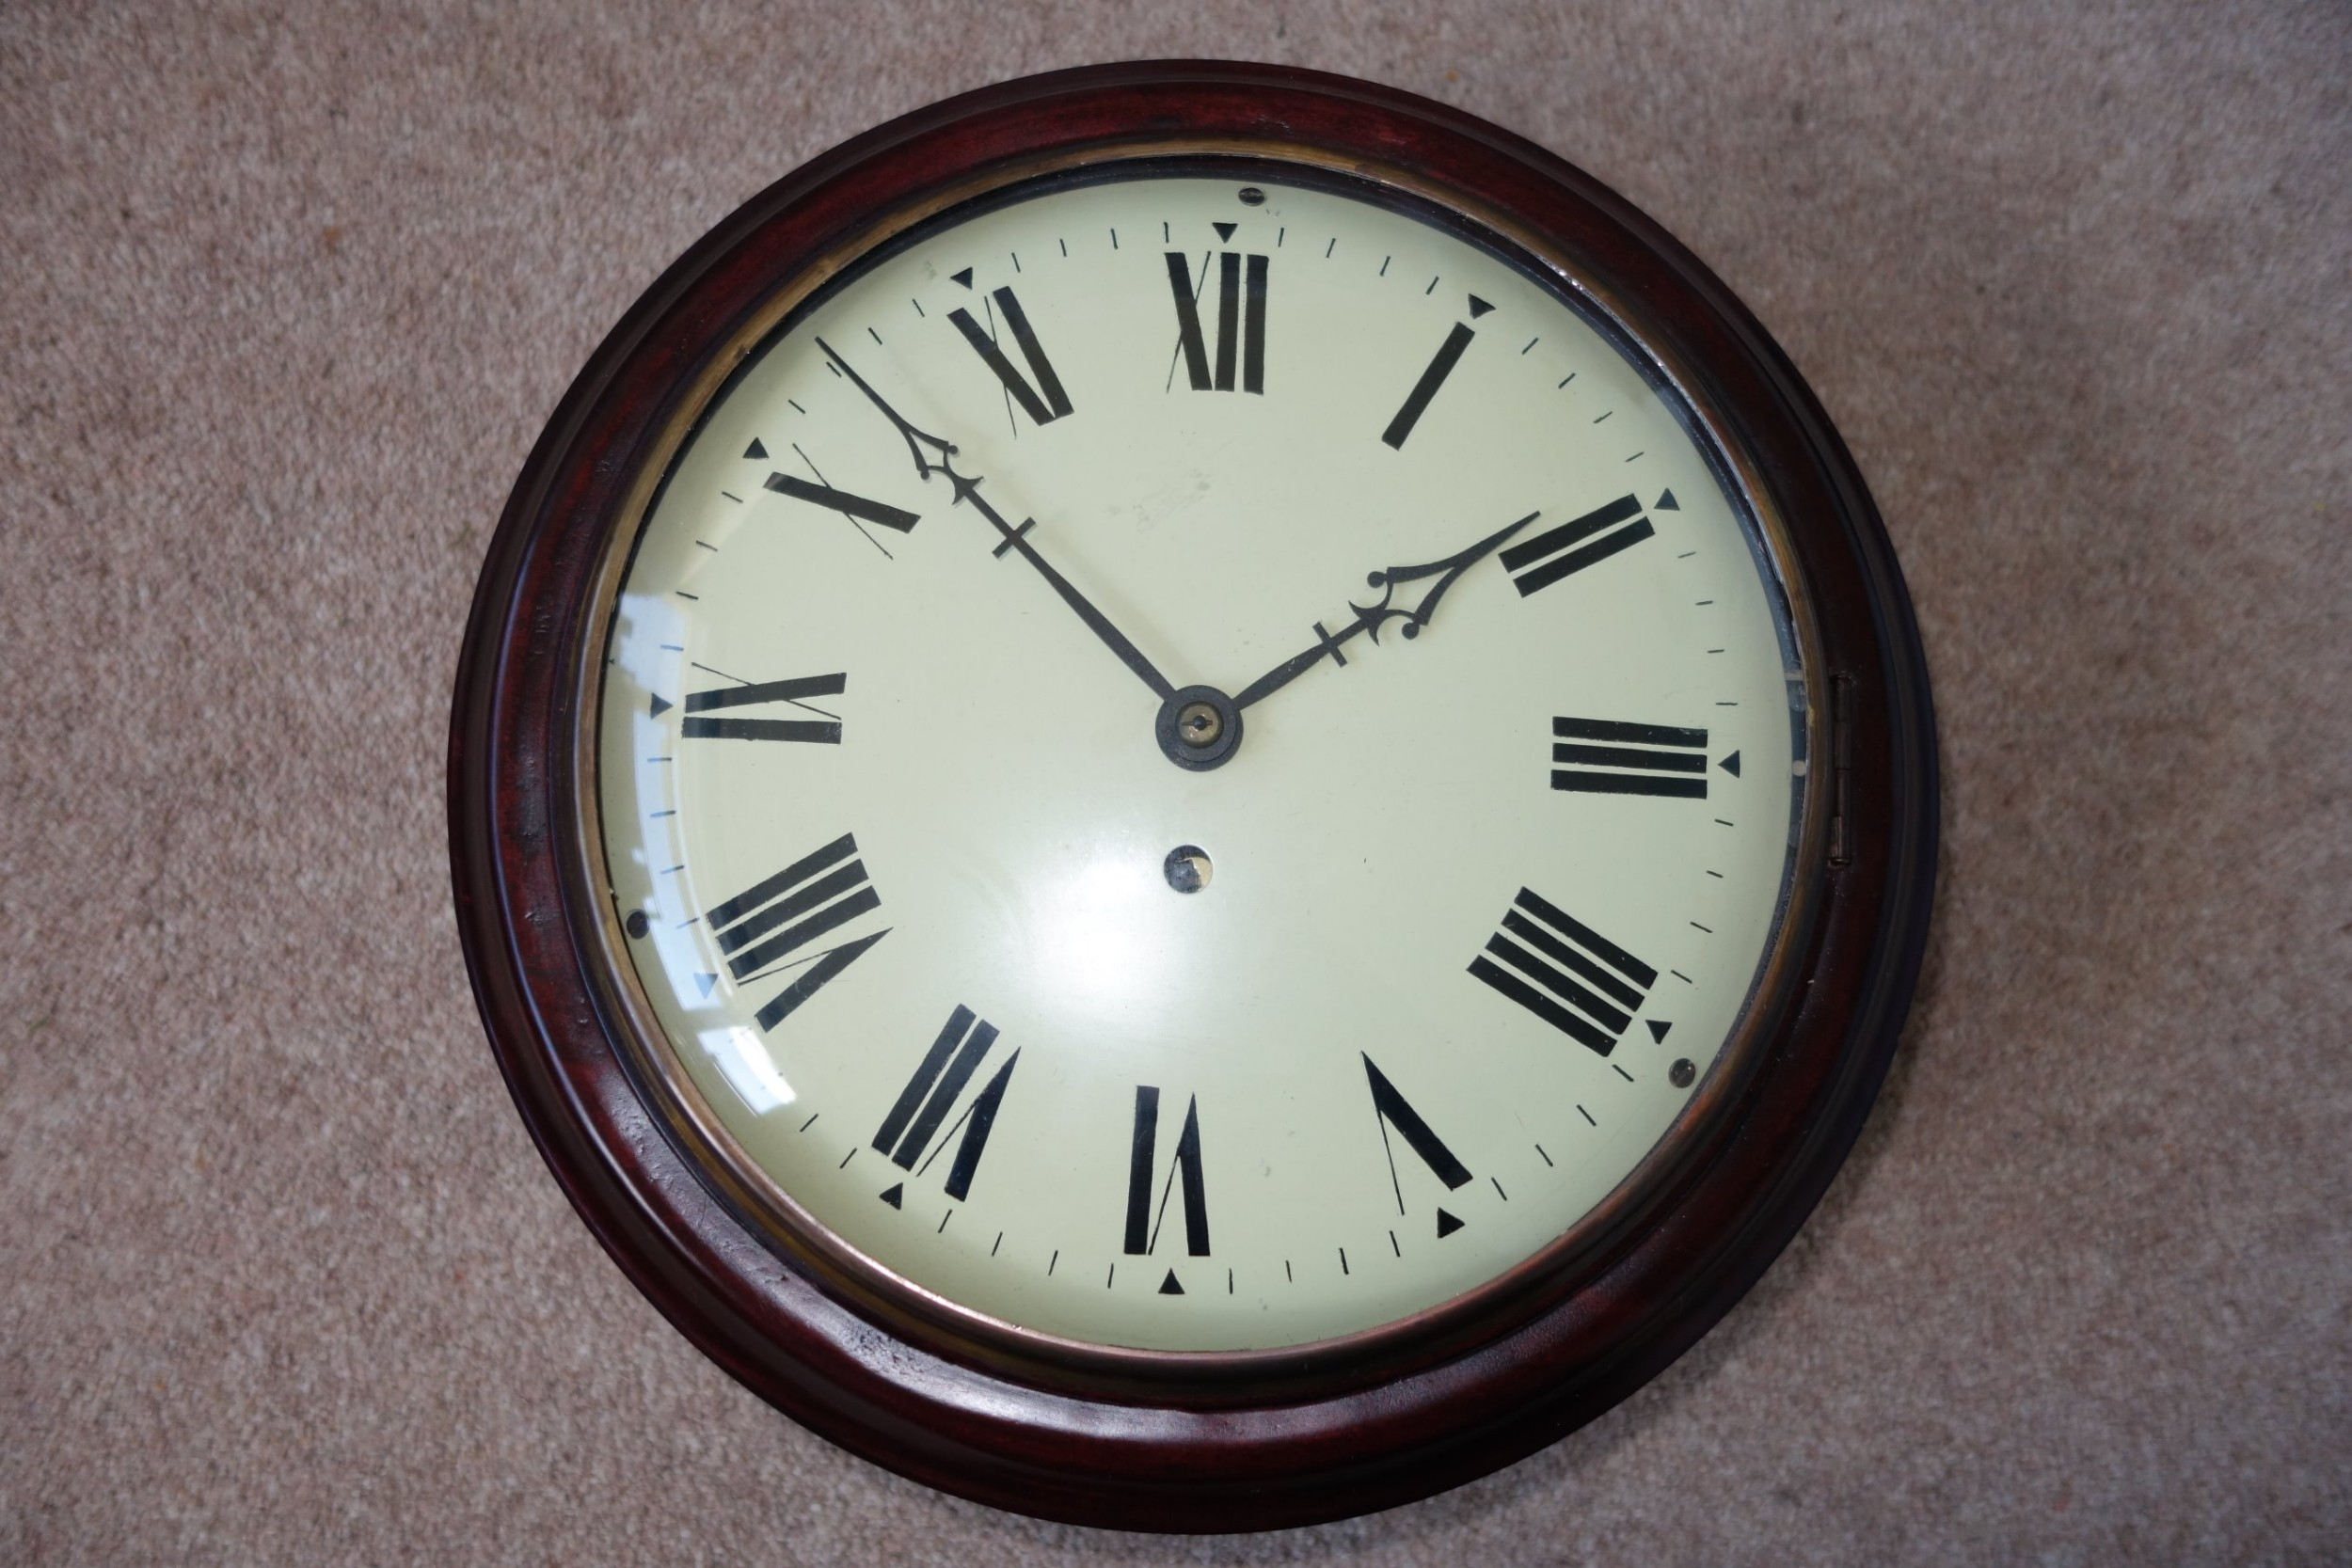 small late 19thearly 20th c convex dial glass fusee schoolofficestation wall clock in a mahogany case